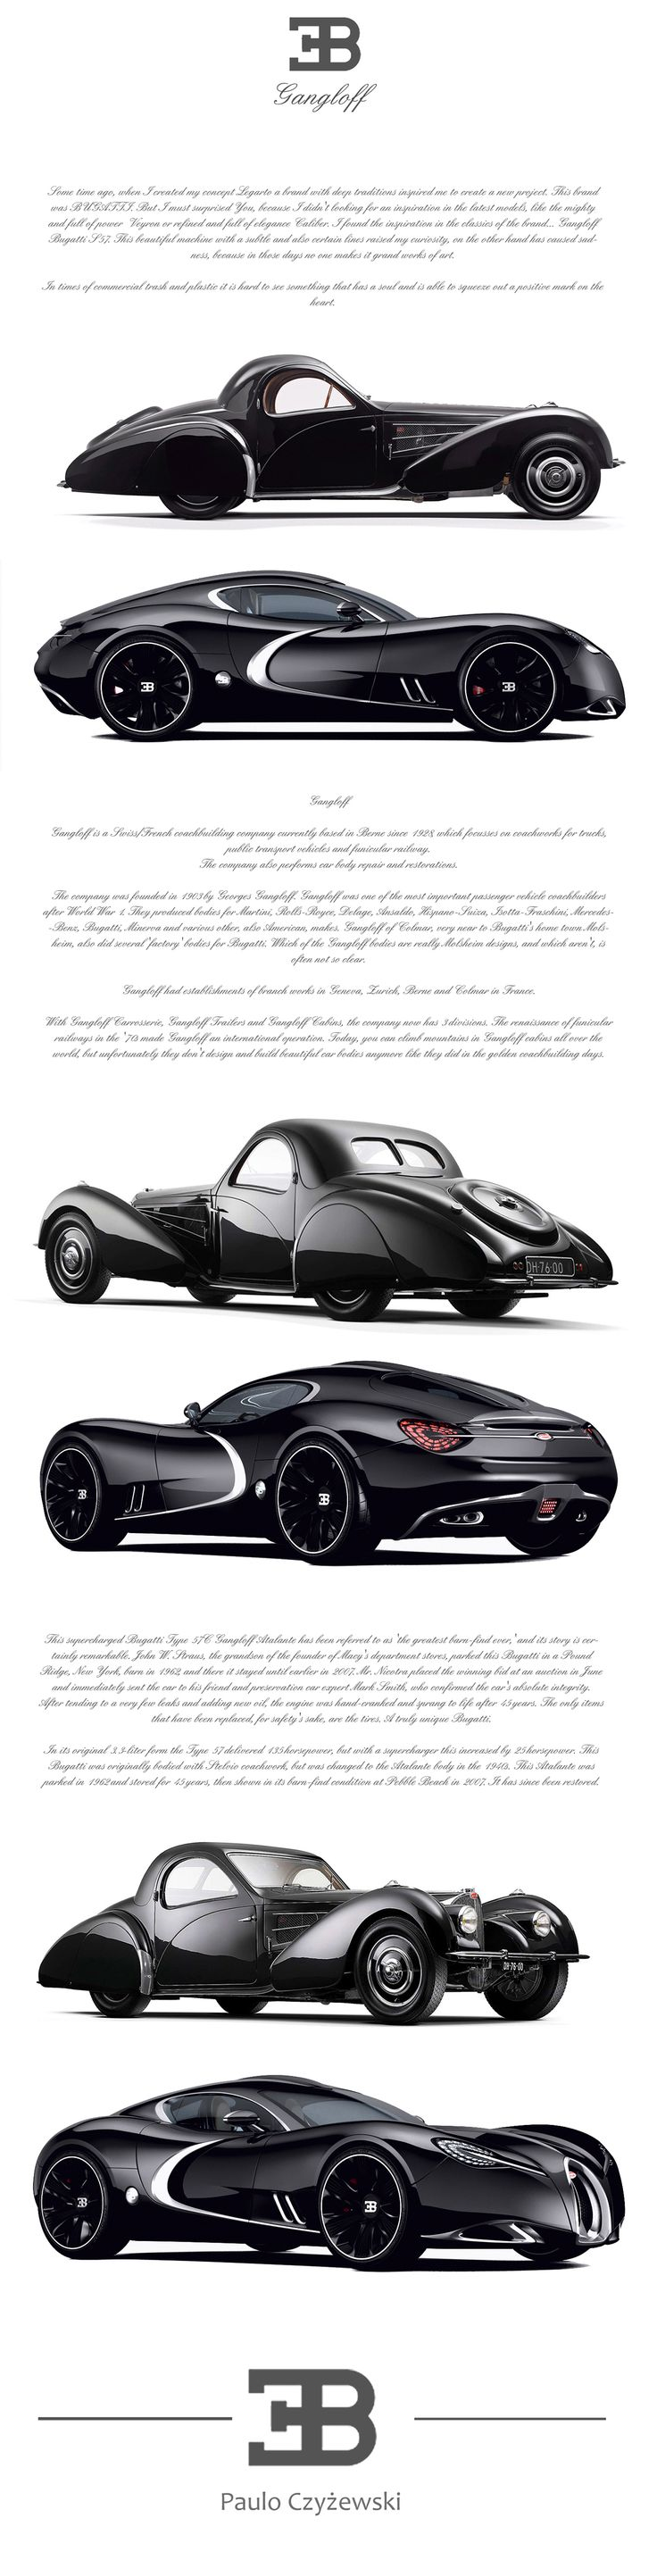 Marvelous Bugatti Gangloff Concept Car | Cars | Pinterest | Cars, Ps And Dream Cars